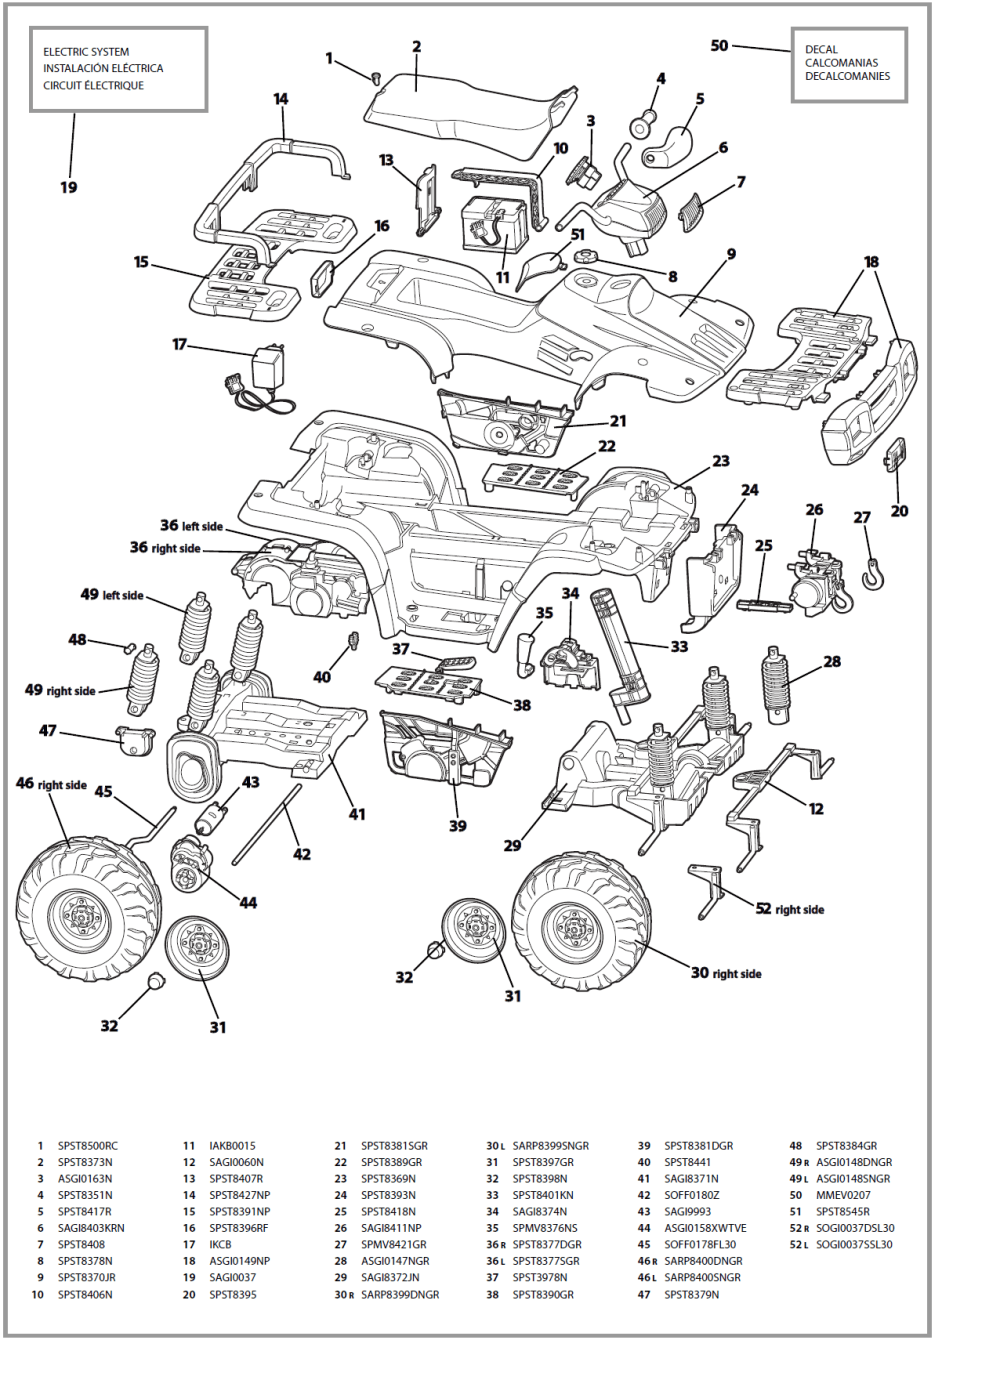 medium resolution of polaris sportsman 700 engine diagram wiring diagrams show polaris engine diagram wiring diagram 2004 polaris sportsman